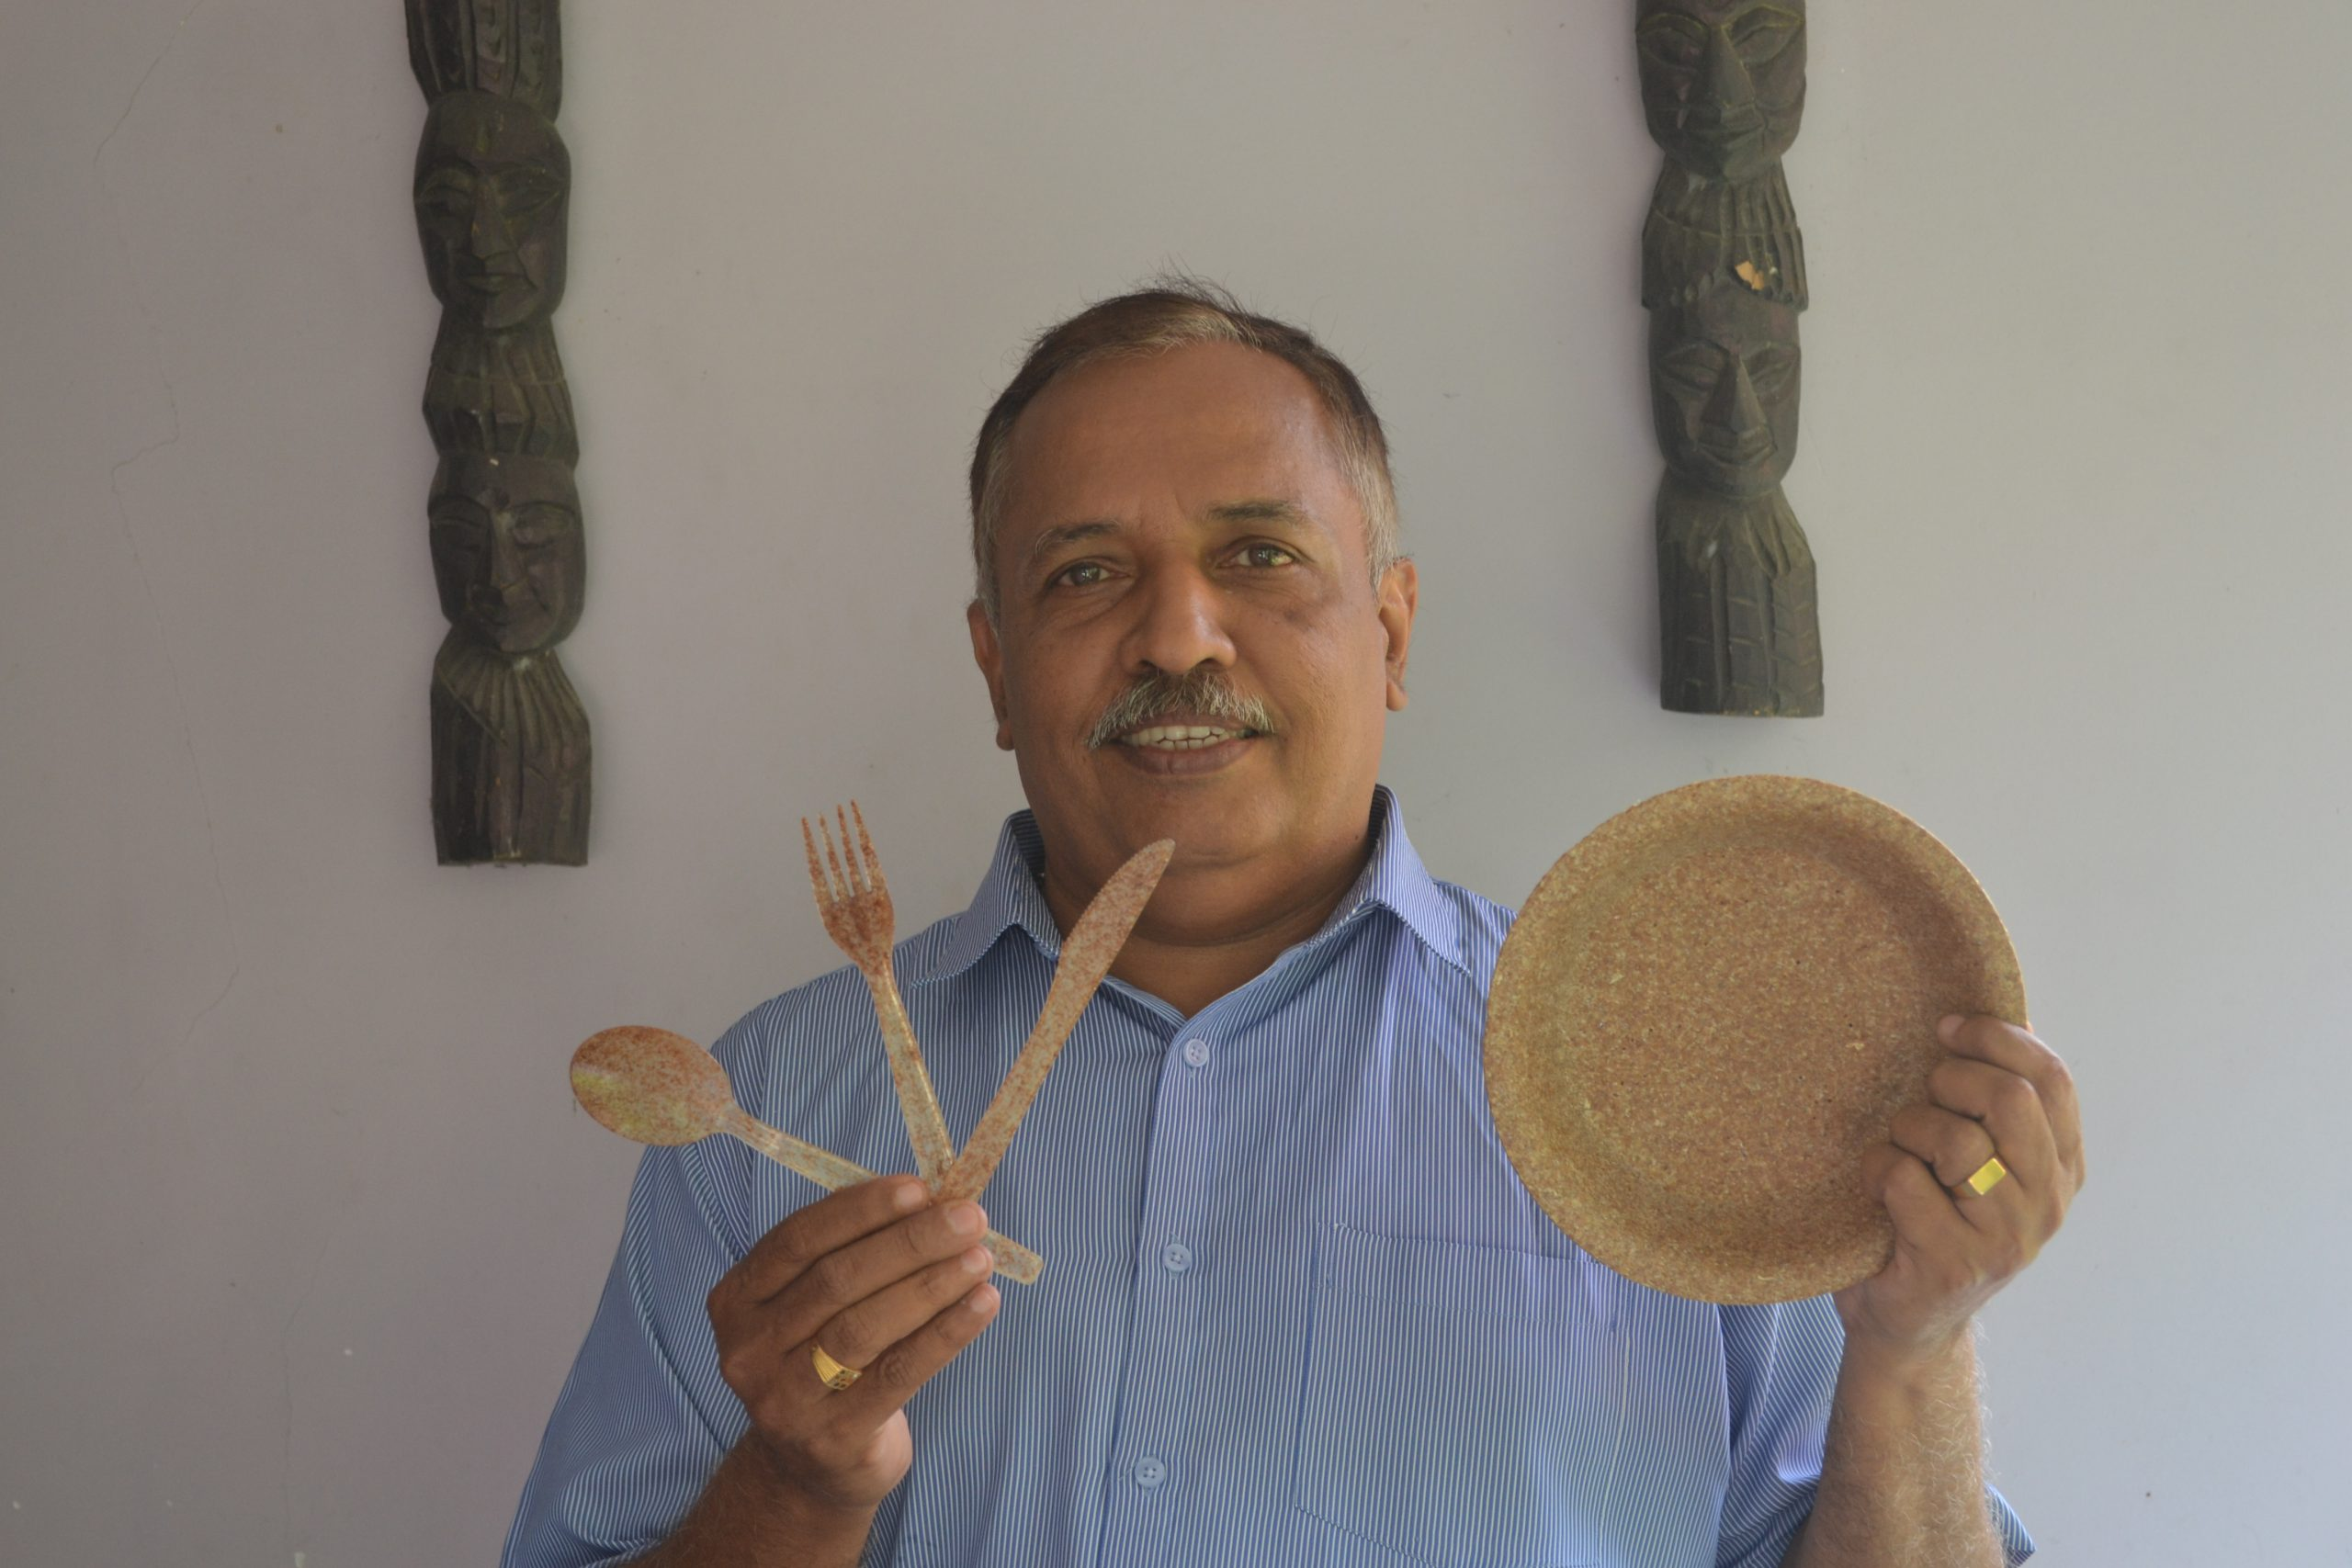 Started by Vinayakumar Balakrishnan, Thooshan is a sustainability centric project that makes edible cutlery out of wheat bran.